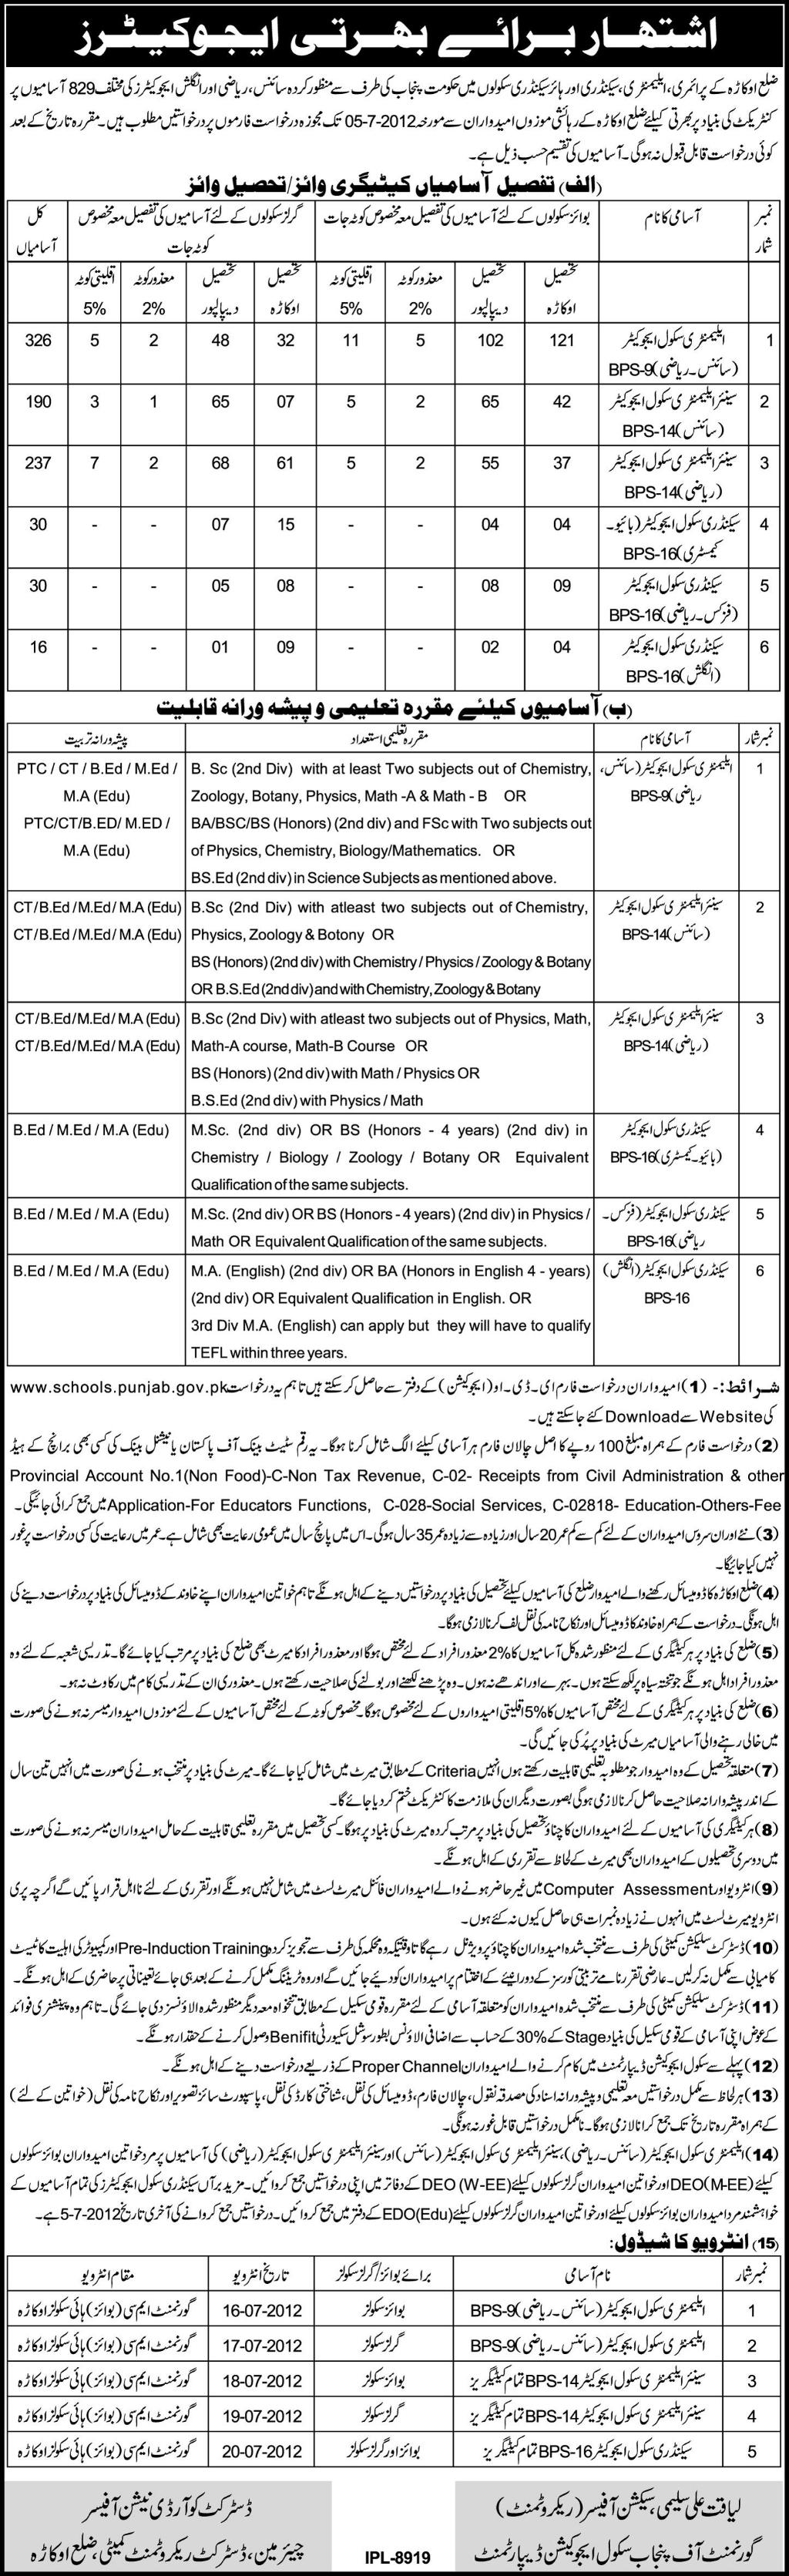 Teachers/Educators Required by Government of Punjab at Primary, Elementary, Secondary and Higher Secondary Schools (Okara District) (829 Vacancies) (Govt. Job)